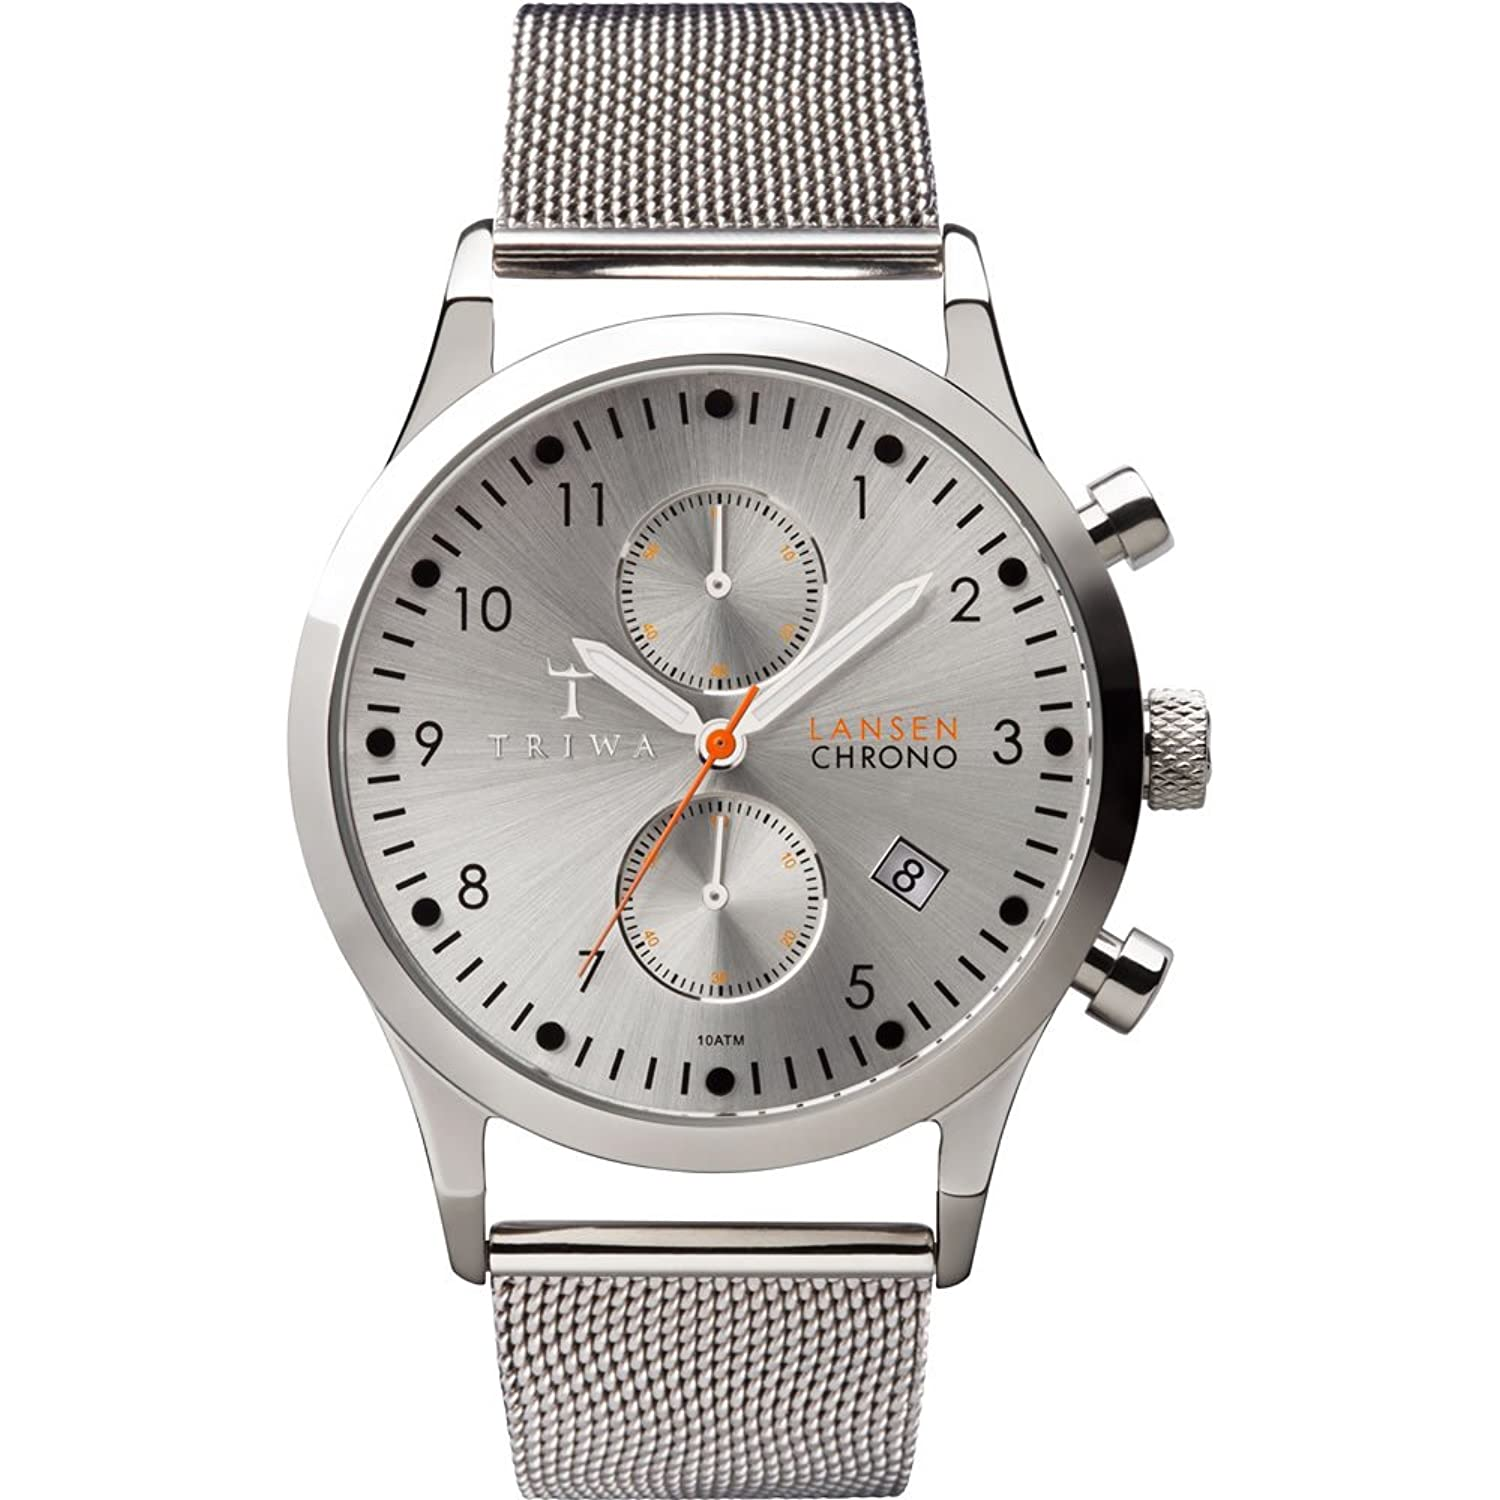 TRIWA Watch - Lansen Chrono - Stirling